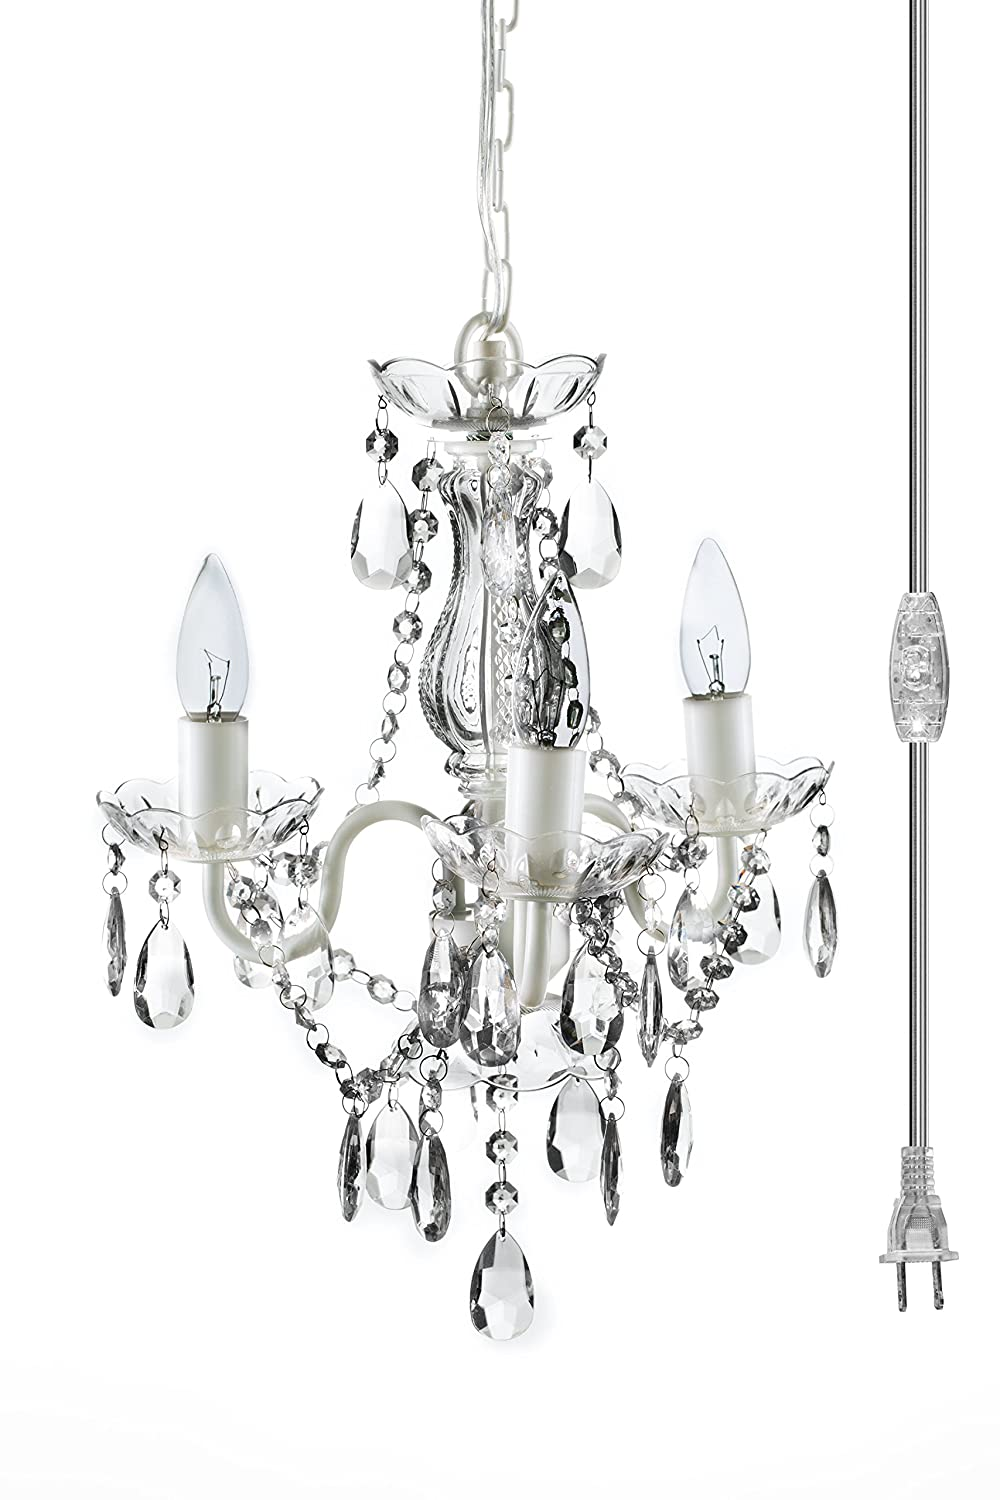 The original gypsy color 3 light mini plug in crystal chandelier the original gypsy color 3 light mini plug in crystal chandelier for h16 w13 white metal frame with clear acrylic crystals amazon arubaitofo Image collections